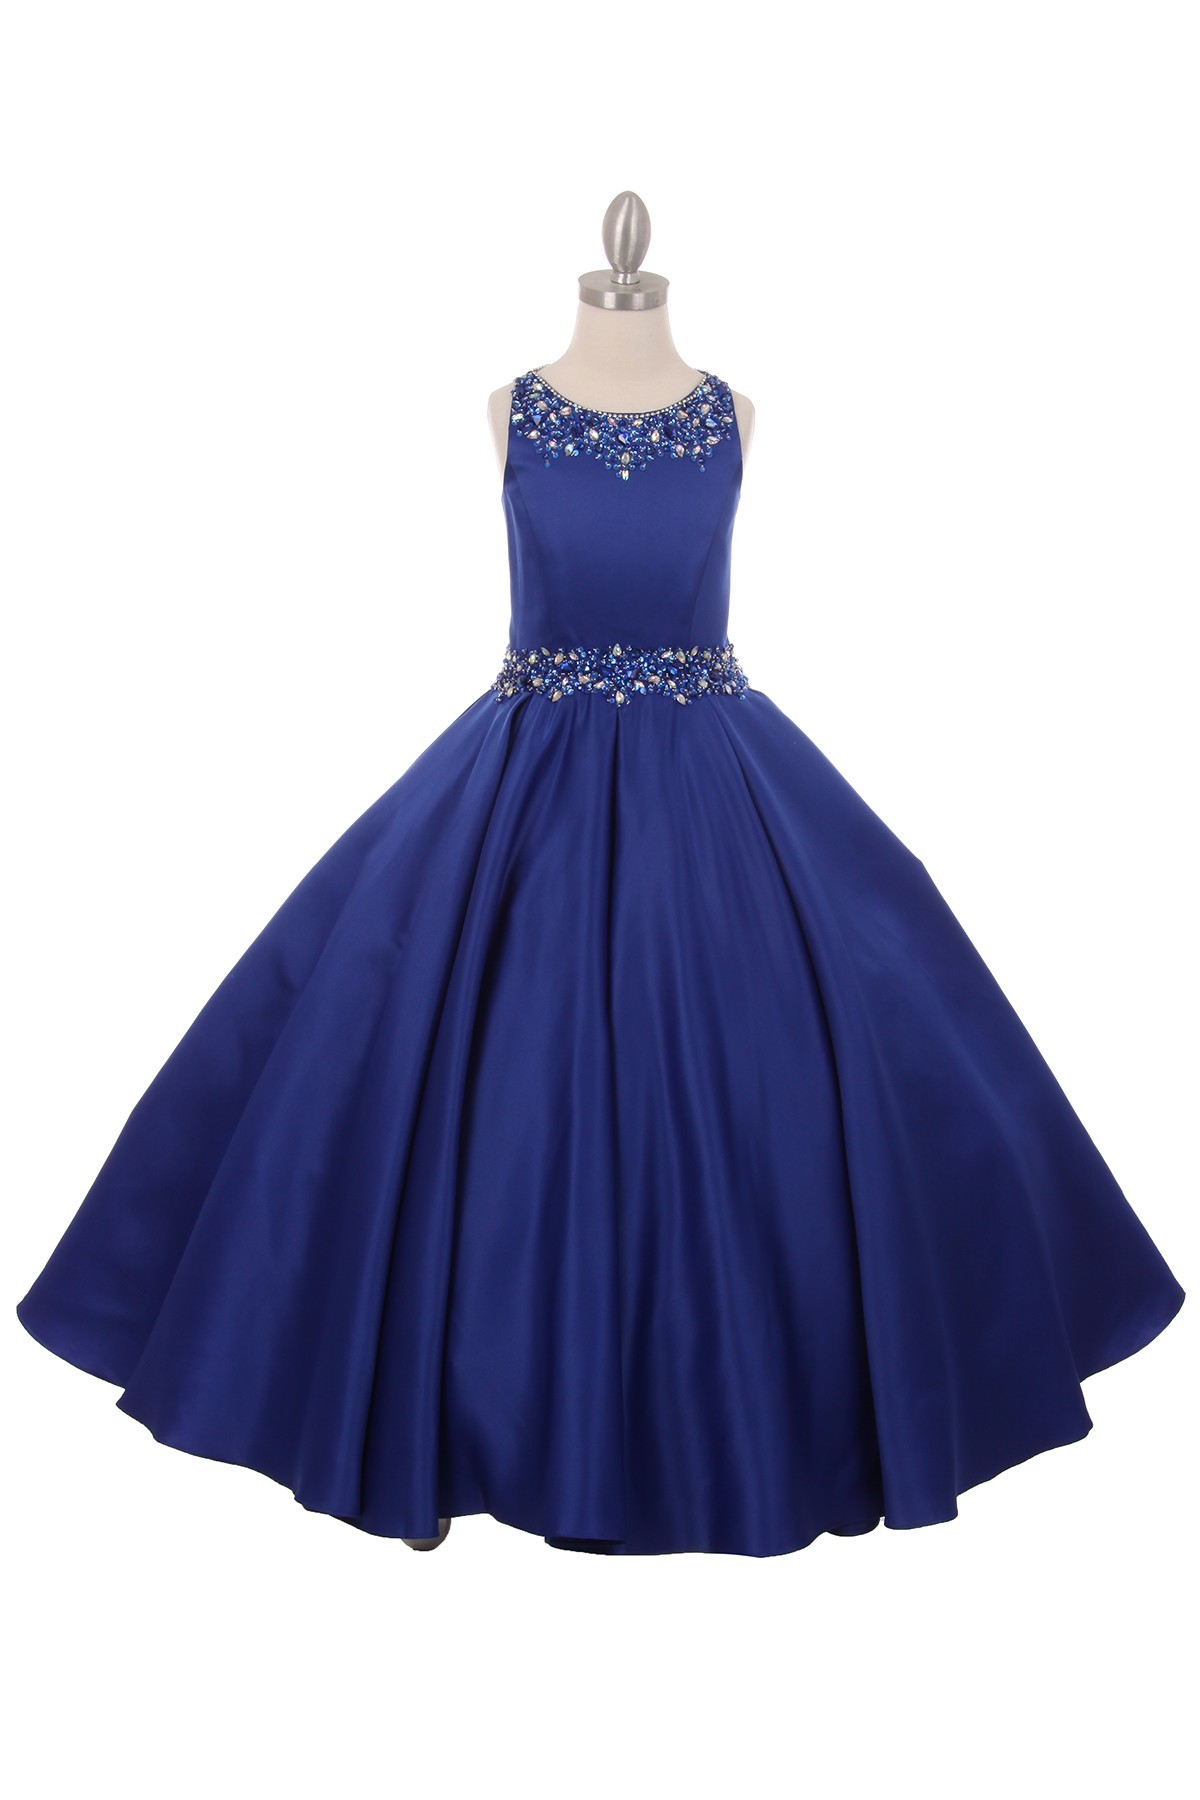 royal blue dresses for girls